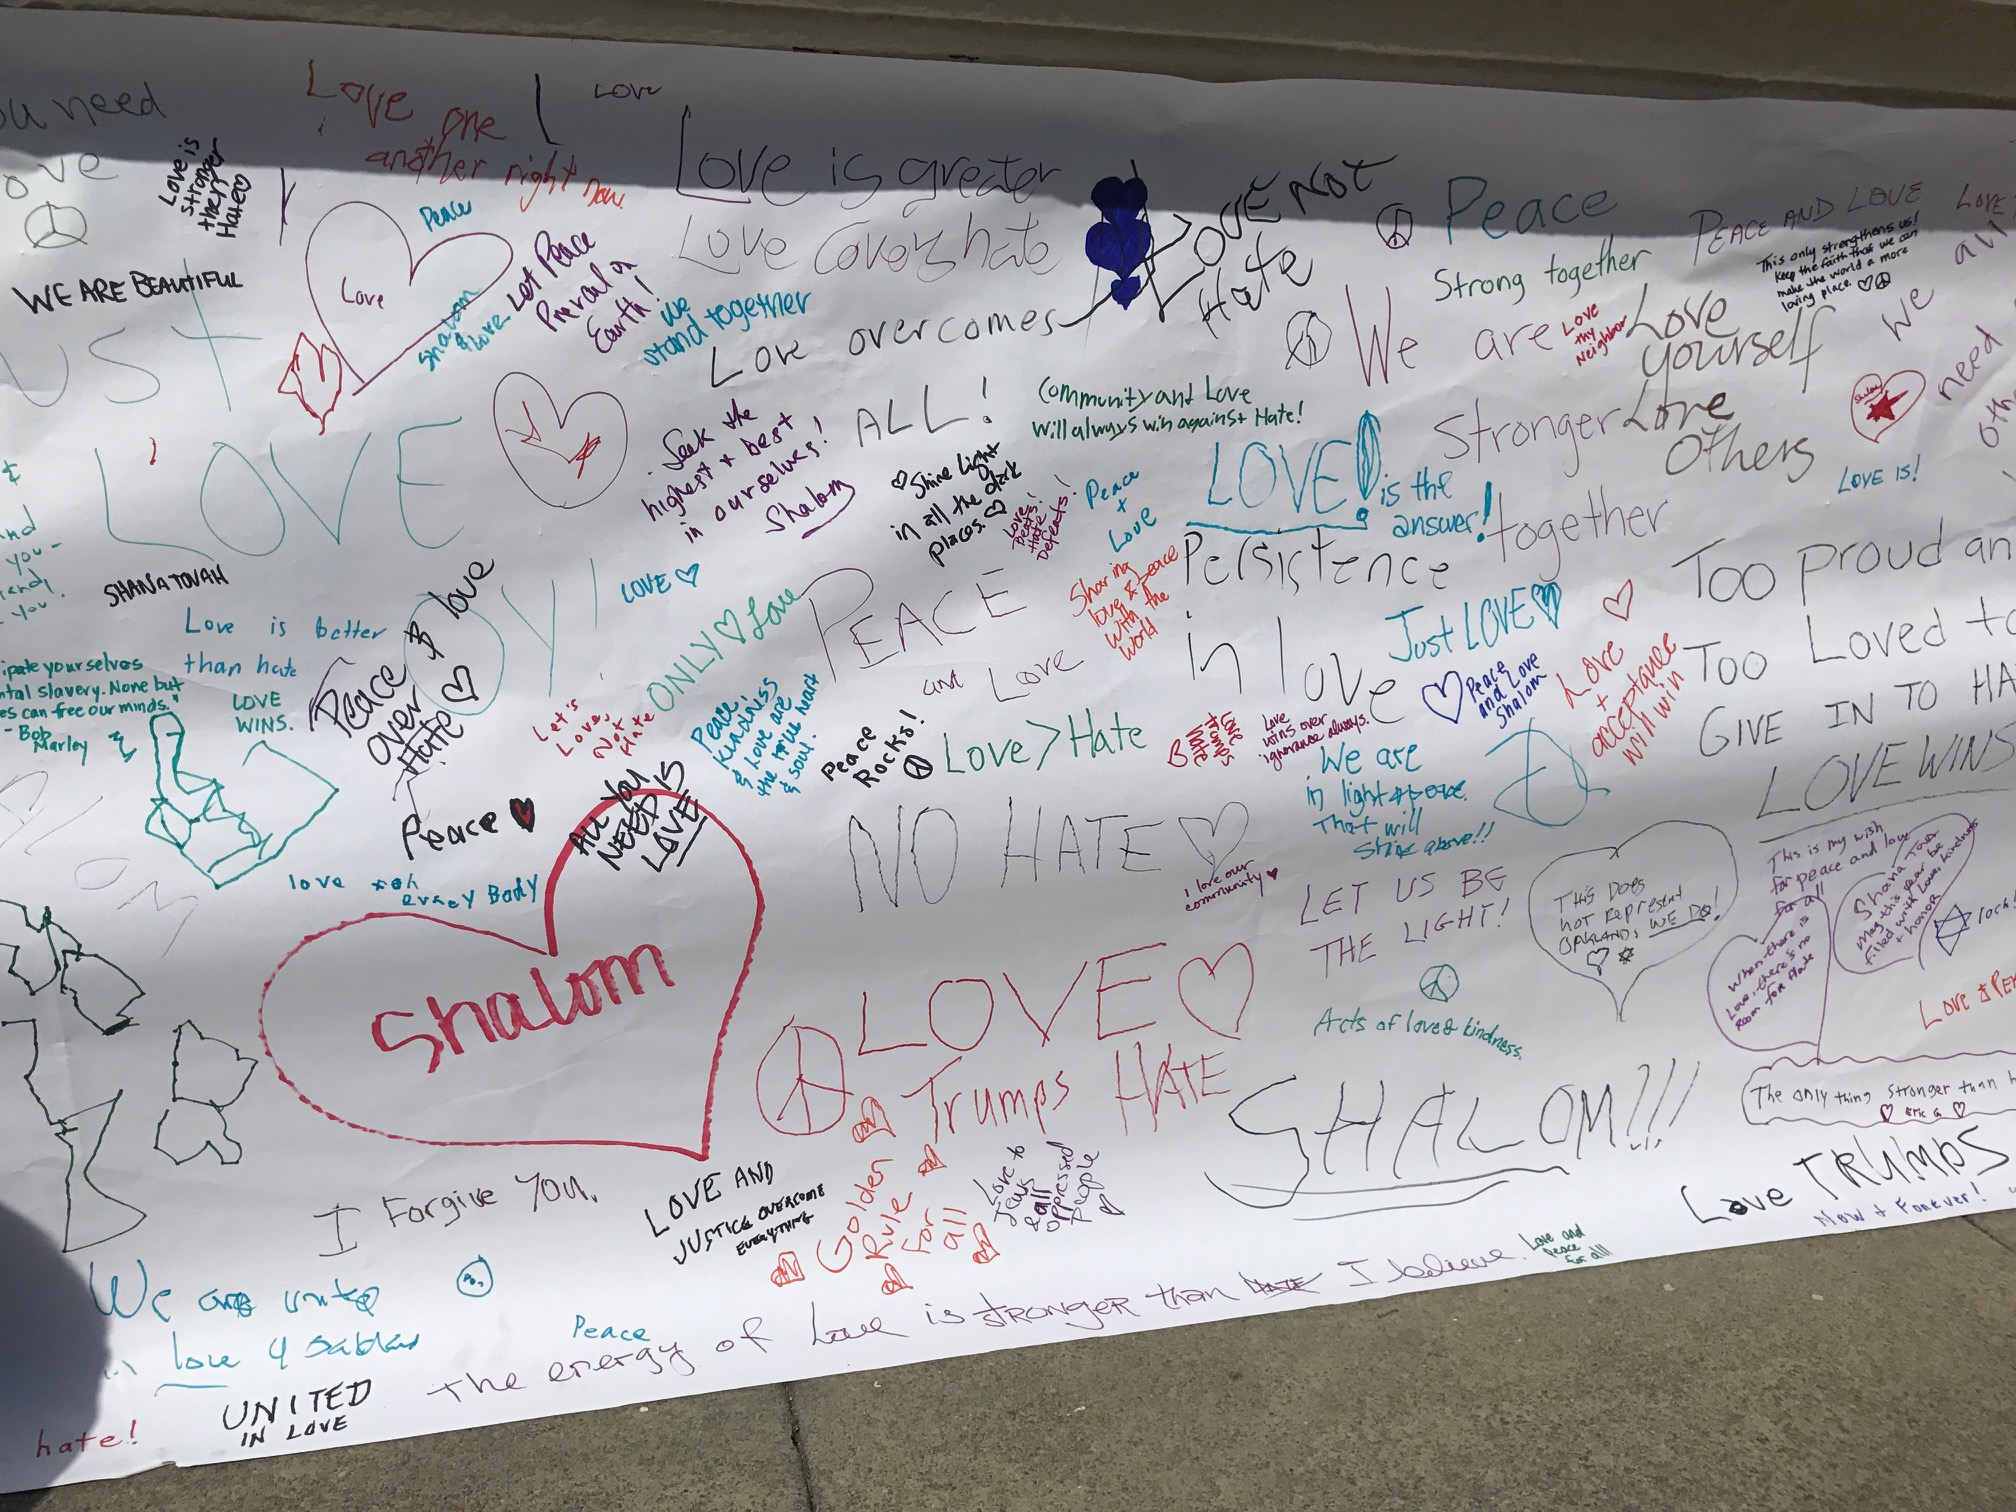 The butcher paper covering anti-Semitic graffiti that appeared at Oakland Temple Sinai on Rosh Hashanah quickly filled up with words of hope and love. (Photo/Sue Fishkoff)